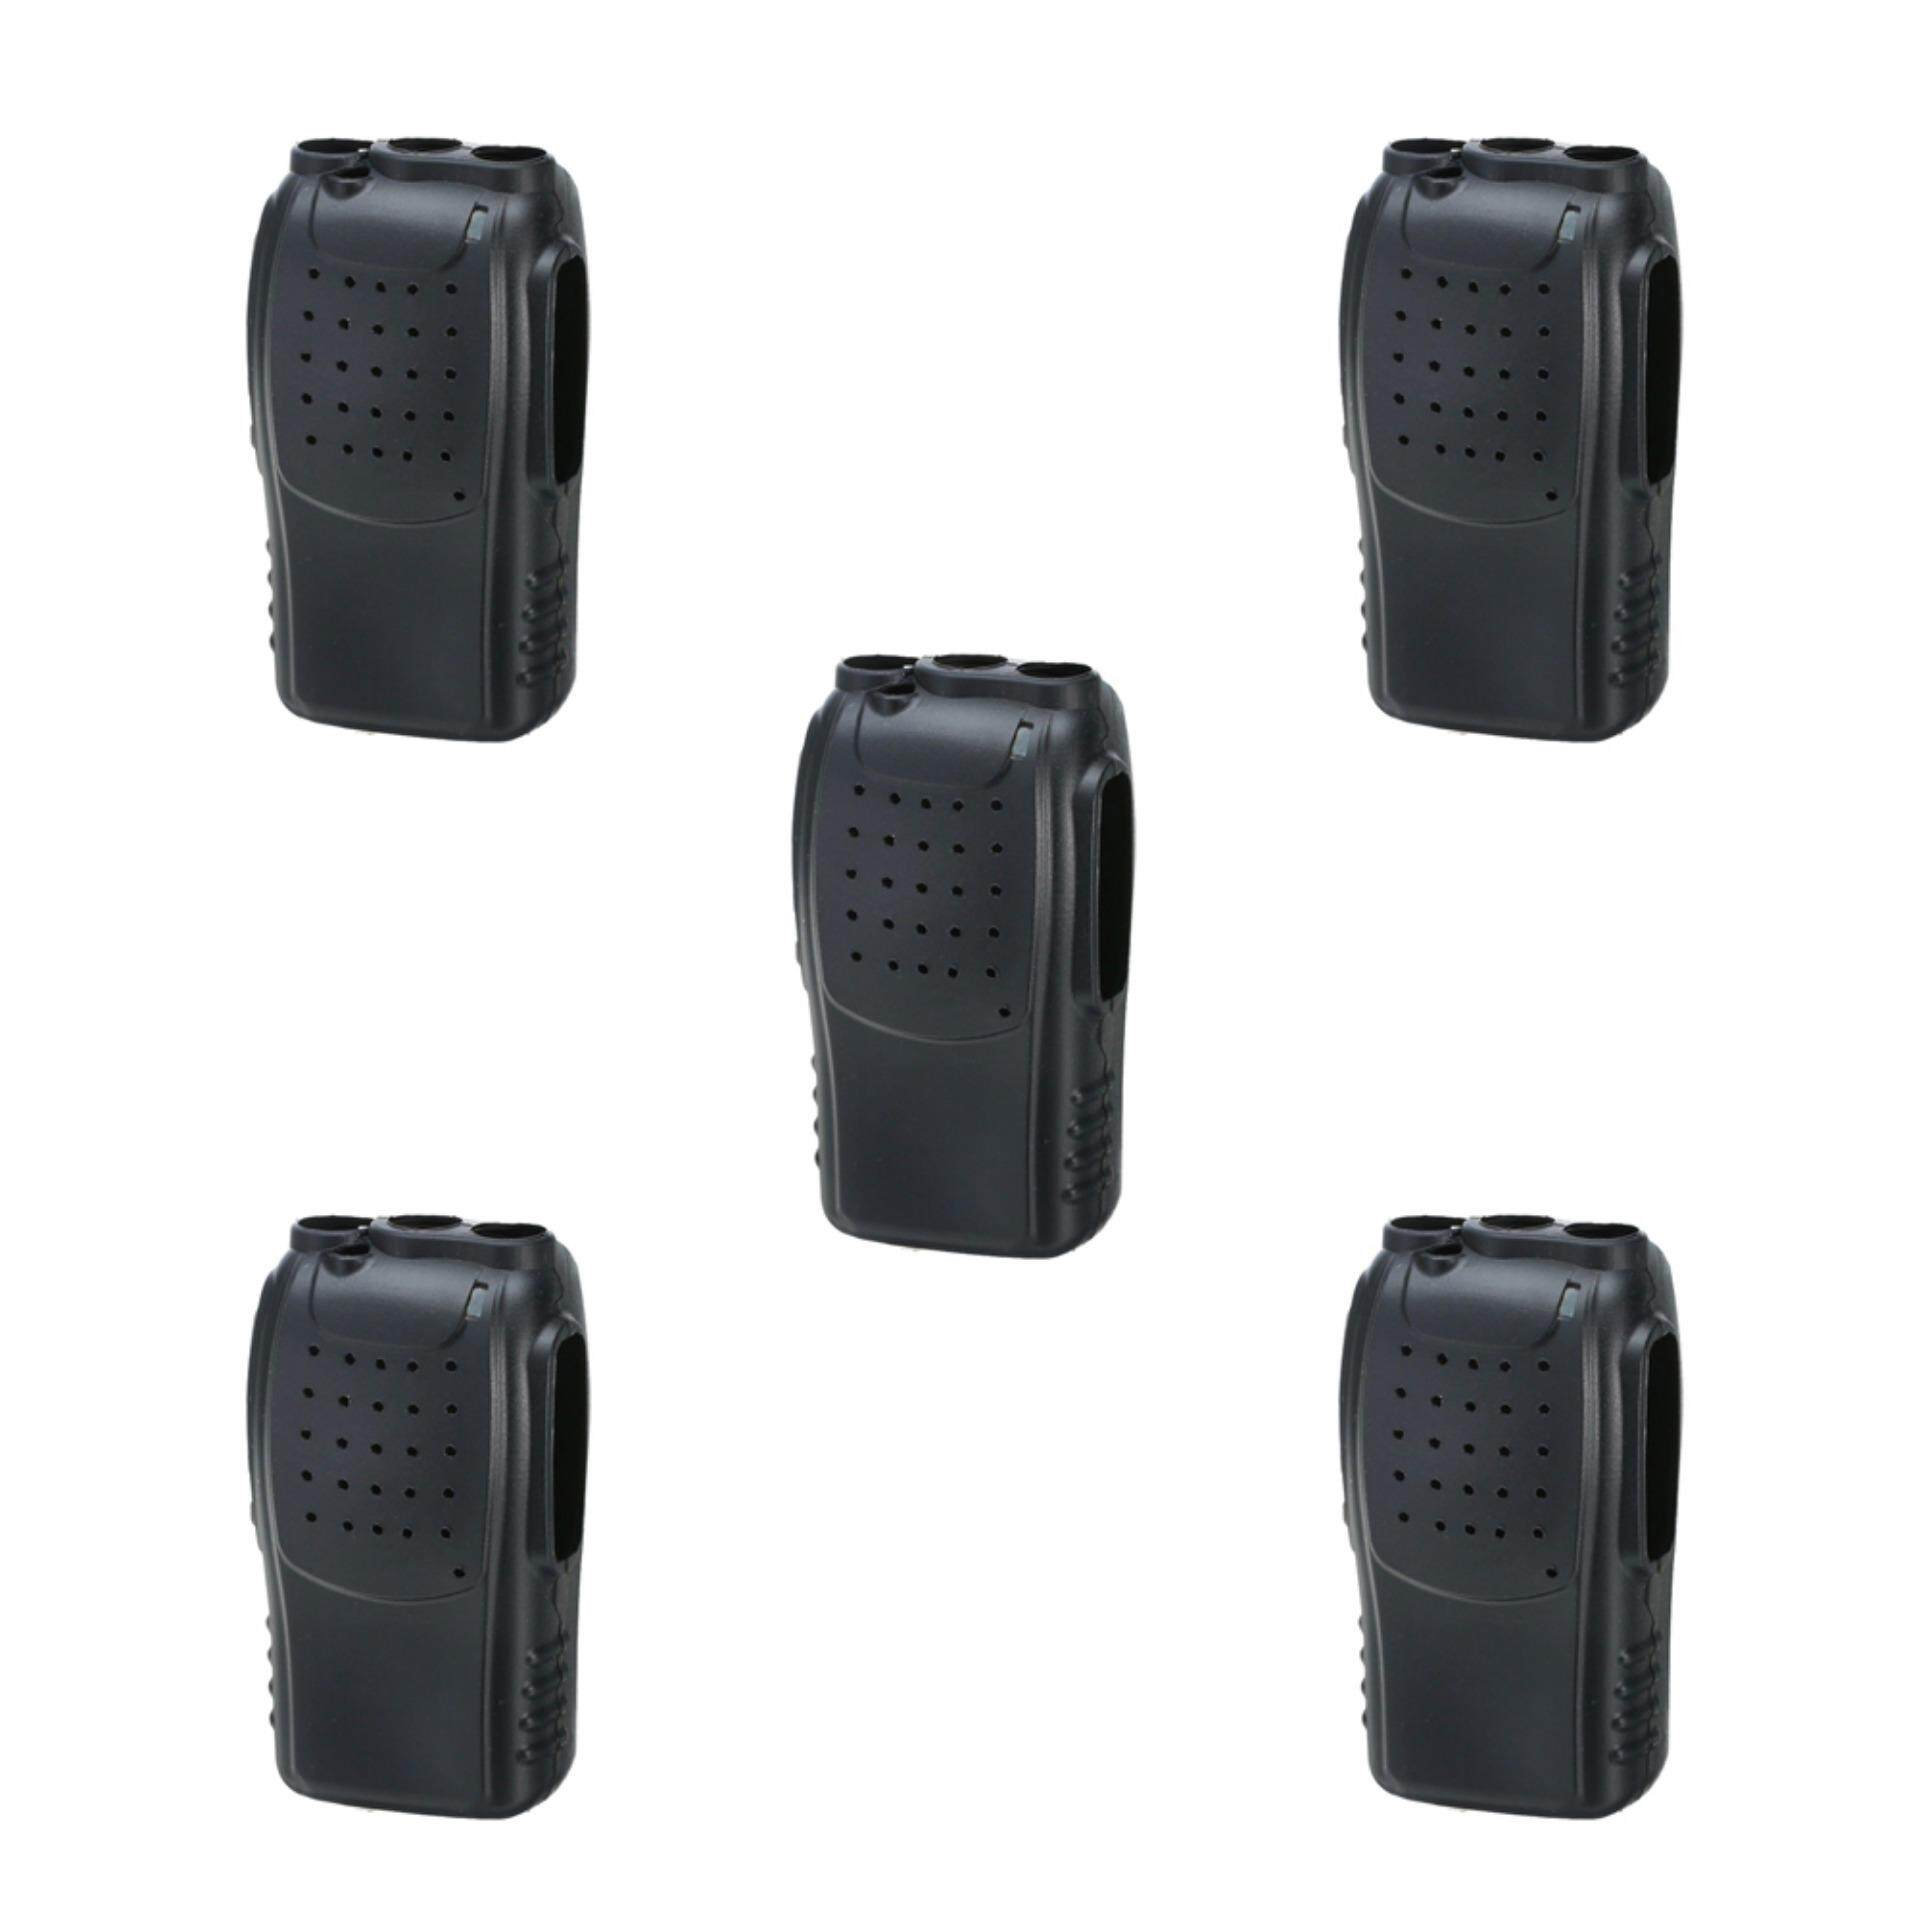 Fitur Ht Handy Talky Walkie Talkie Spc Sh10 Setara Baofeng 888s Dan Uv5r Bf Dual Band Soft Silicone Protection Case X5pc